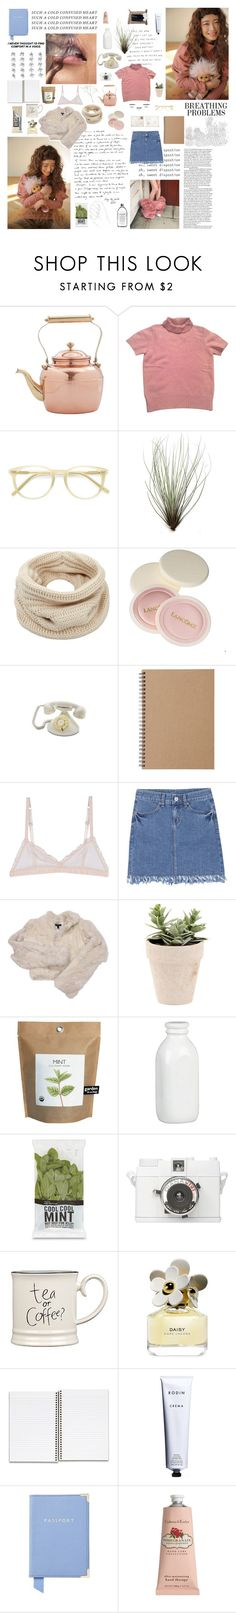 """""""about me / sobre mi / sobre mim [ 1 ]"""" by cocula ❤ liked on Polyvore featuring Old Dutch, Kenzo, Ace, Helmut Lang, Paul Frank, Lancôme, CO, Muji, Hoff By Hoff and Bebe"""